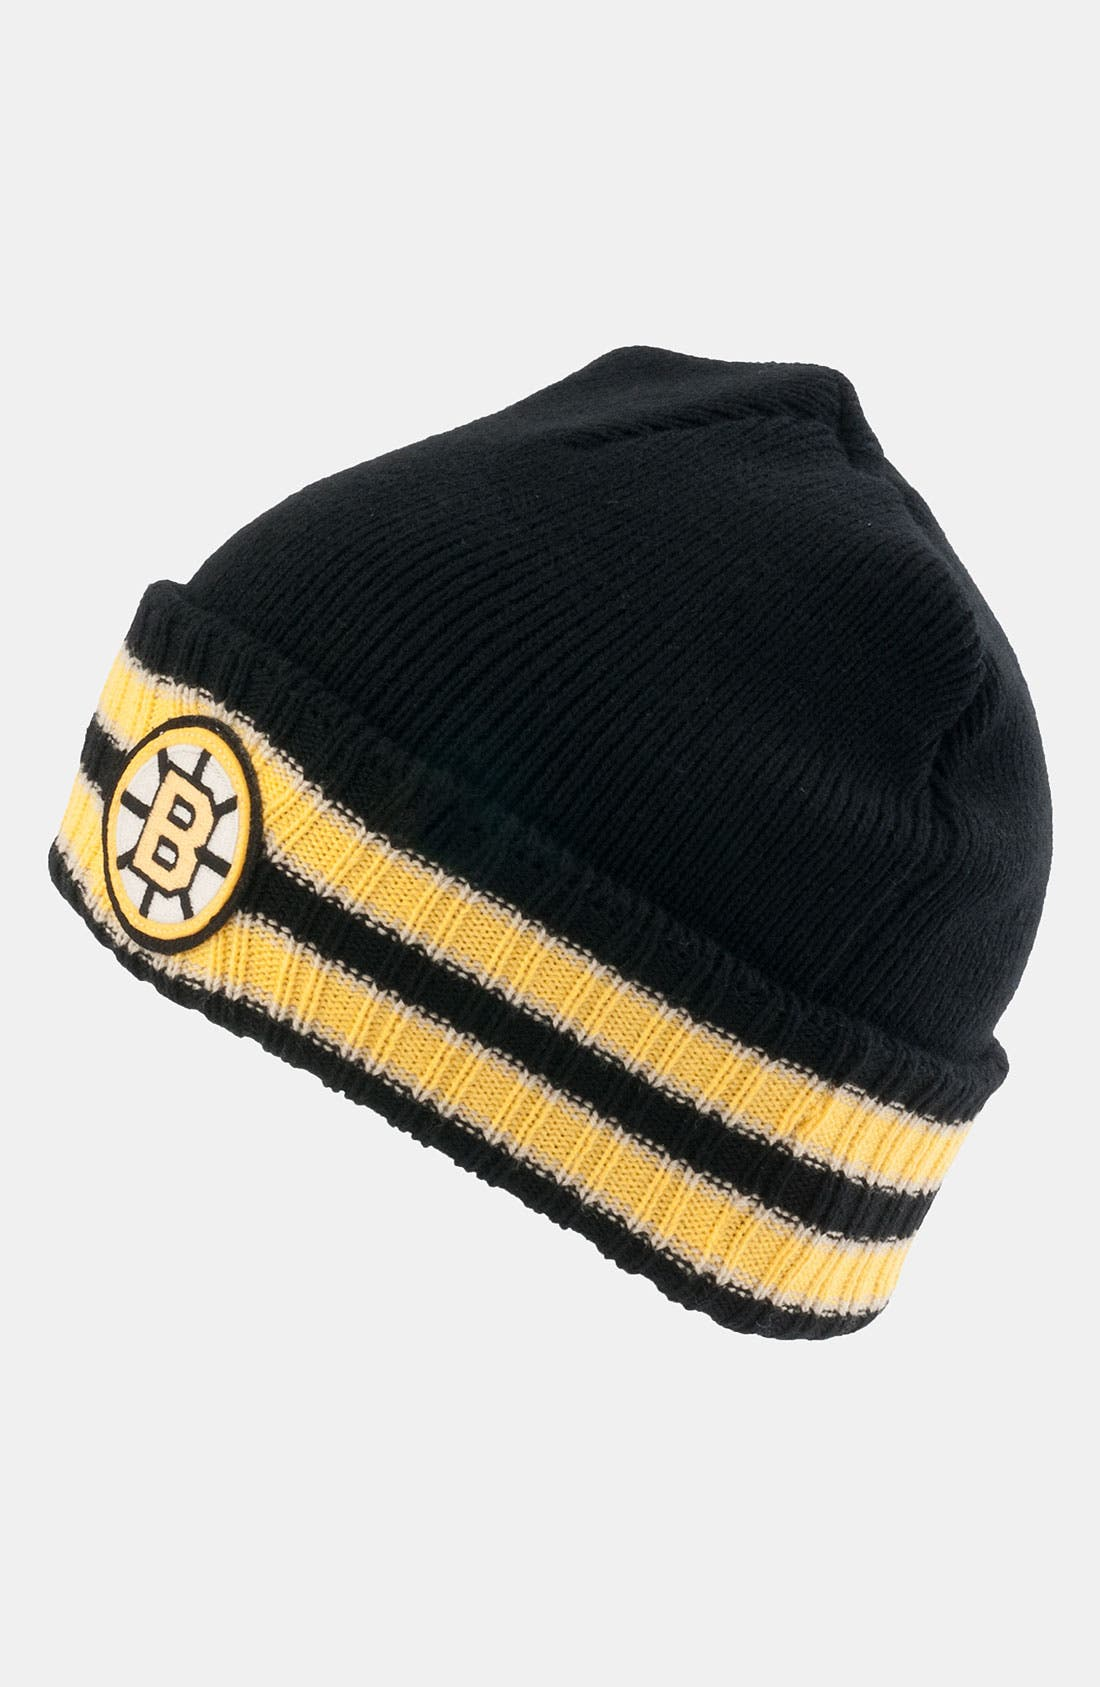 Alternate Image 1 Selected - American Needle 'Boston Bruins - Slash' Knit Hat